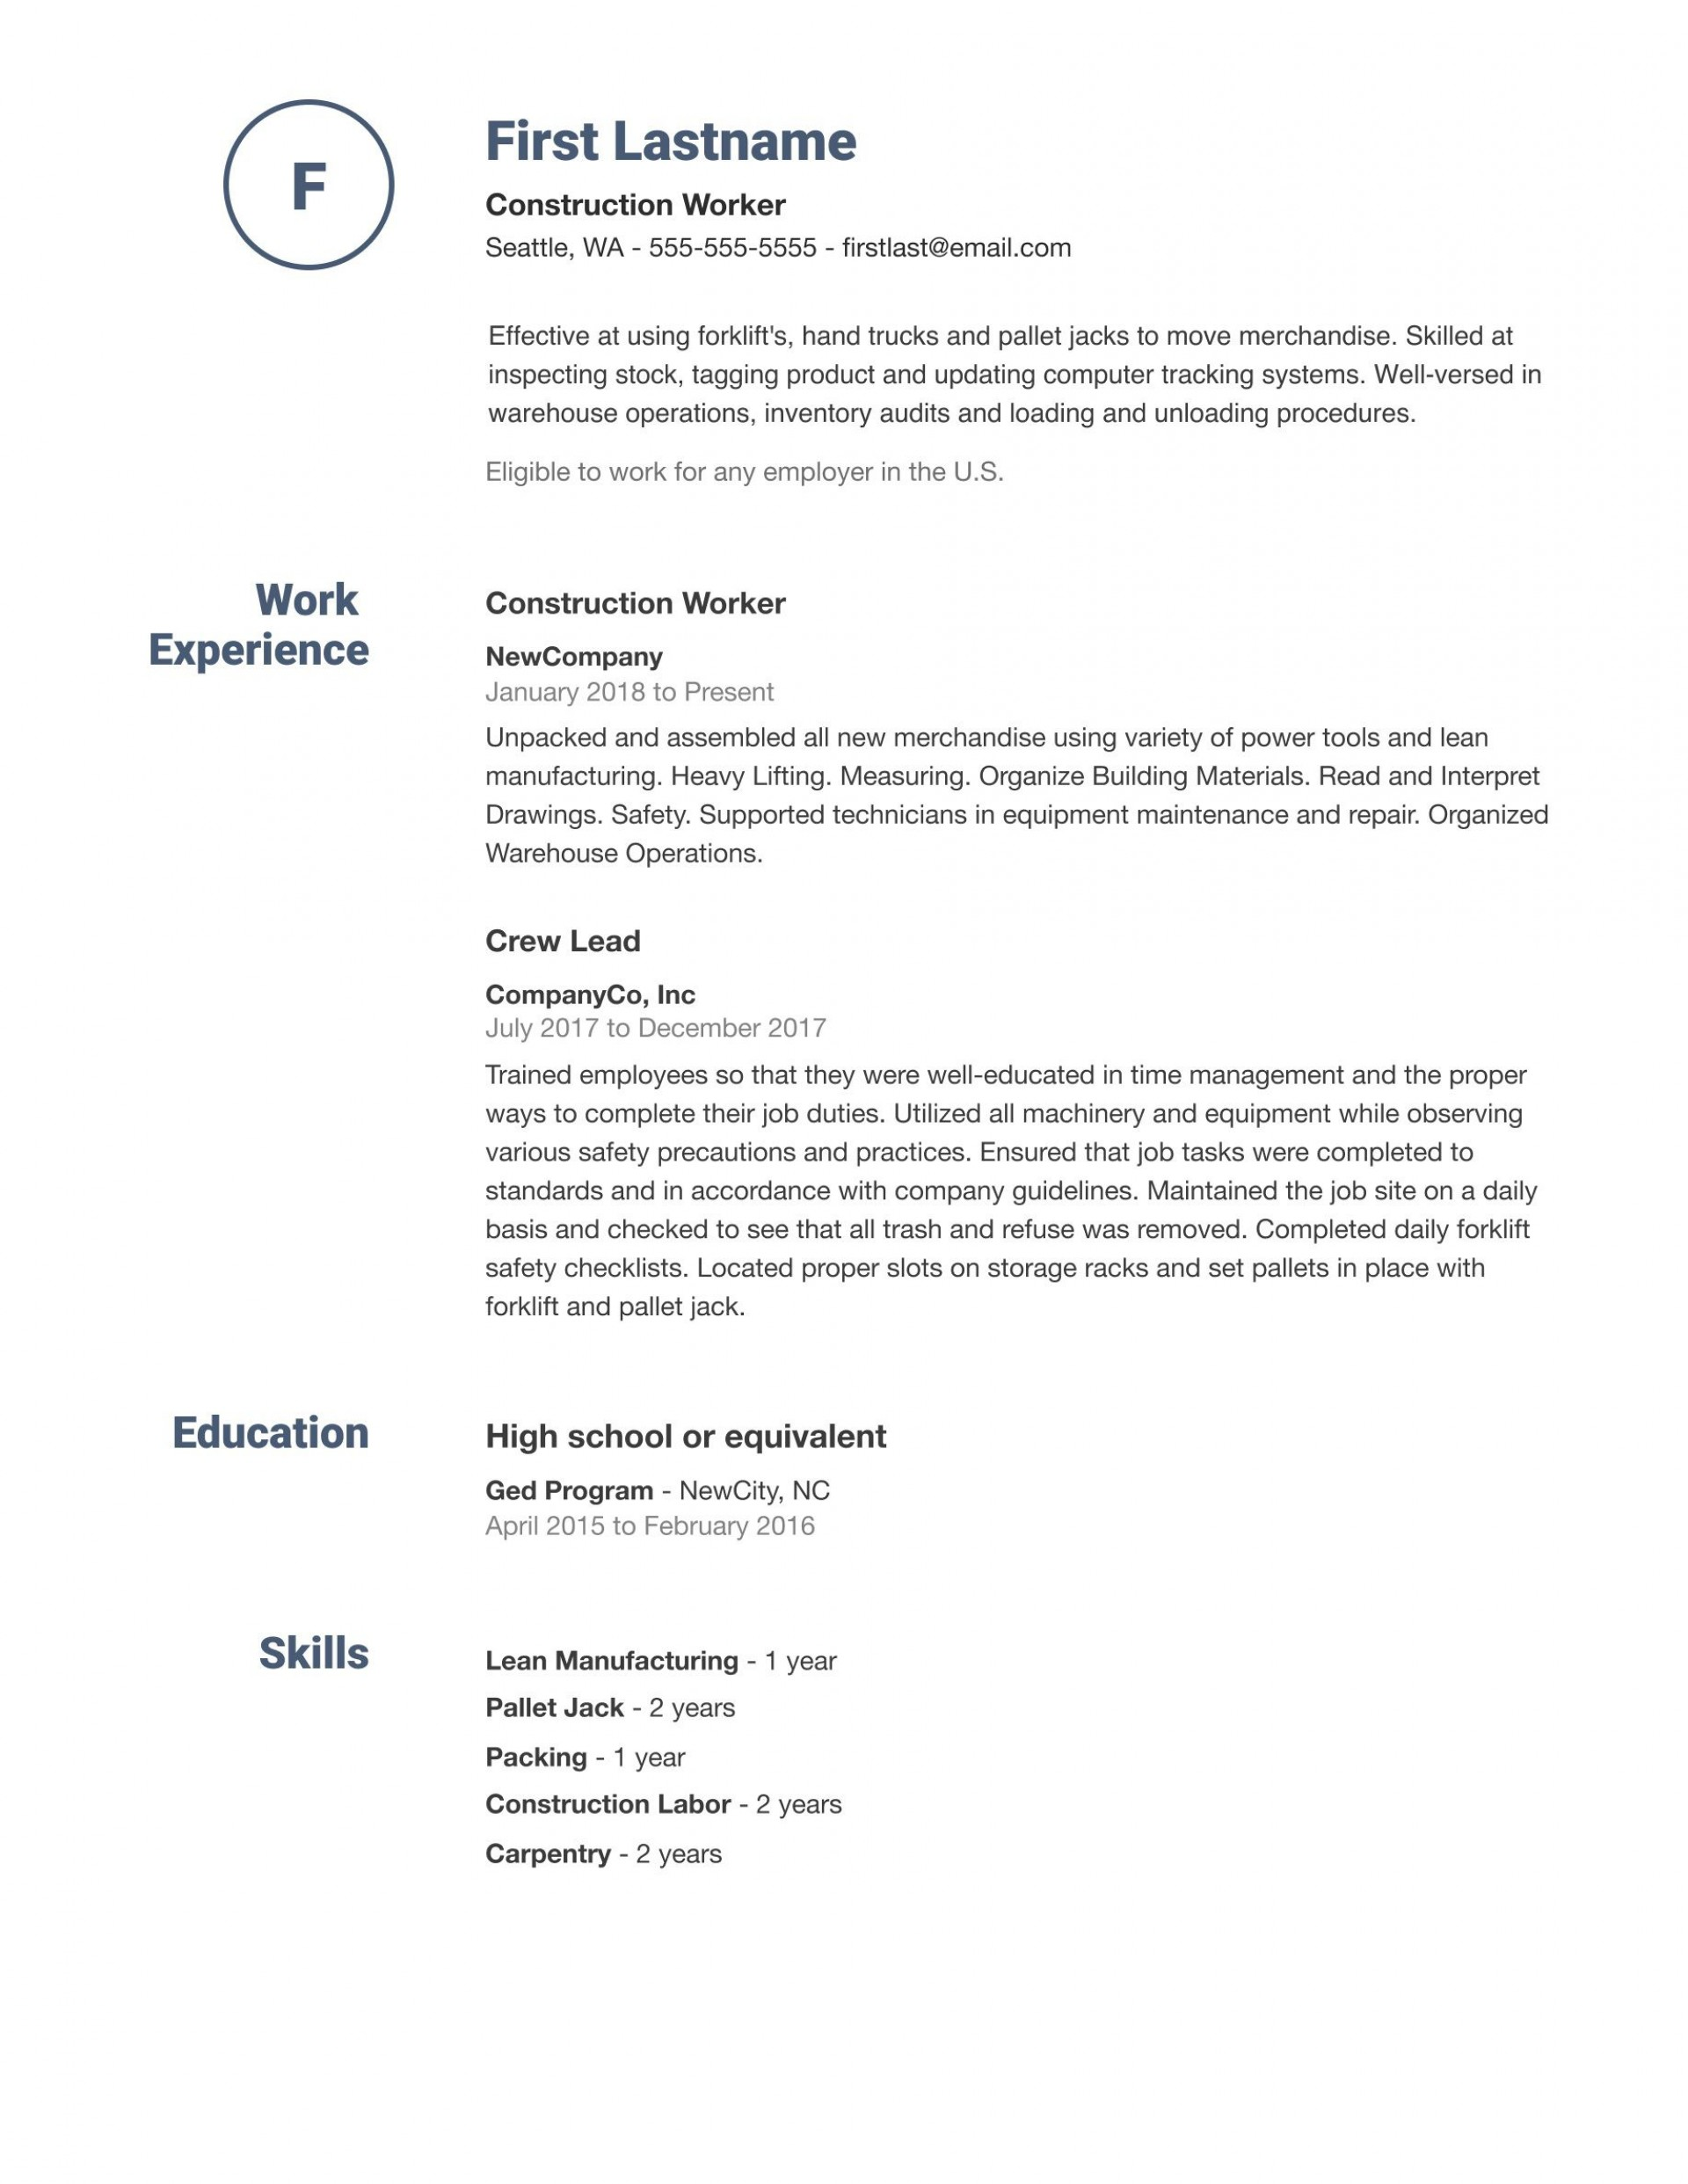 005 Striking Professional Resume Template Example High Resolution  Examples Layout Cv Writing Format1920